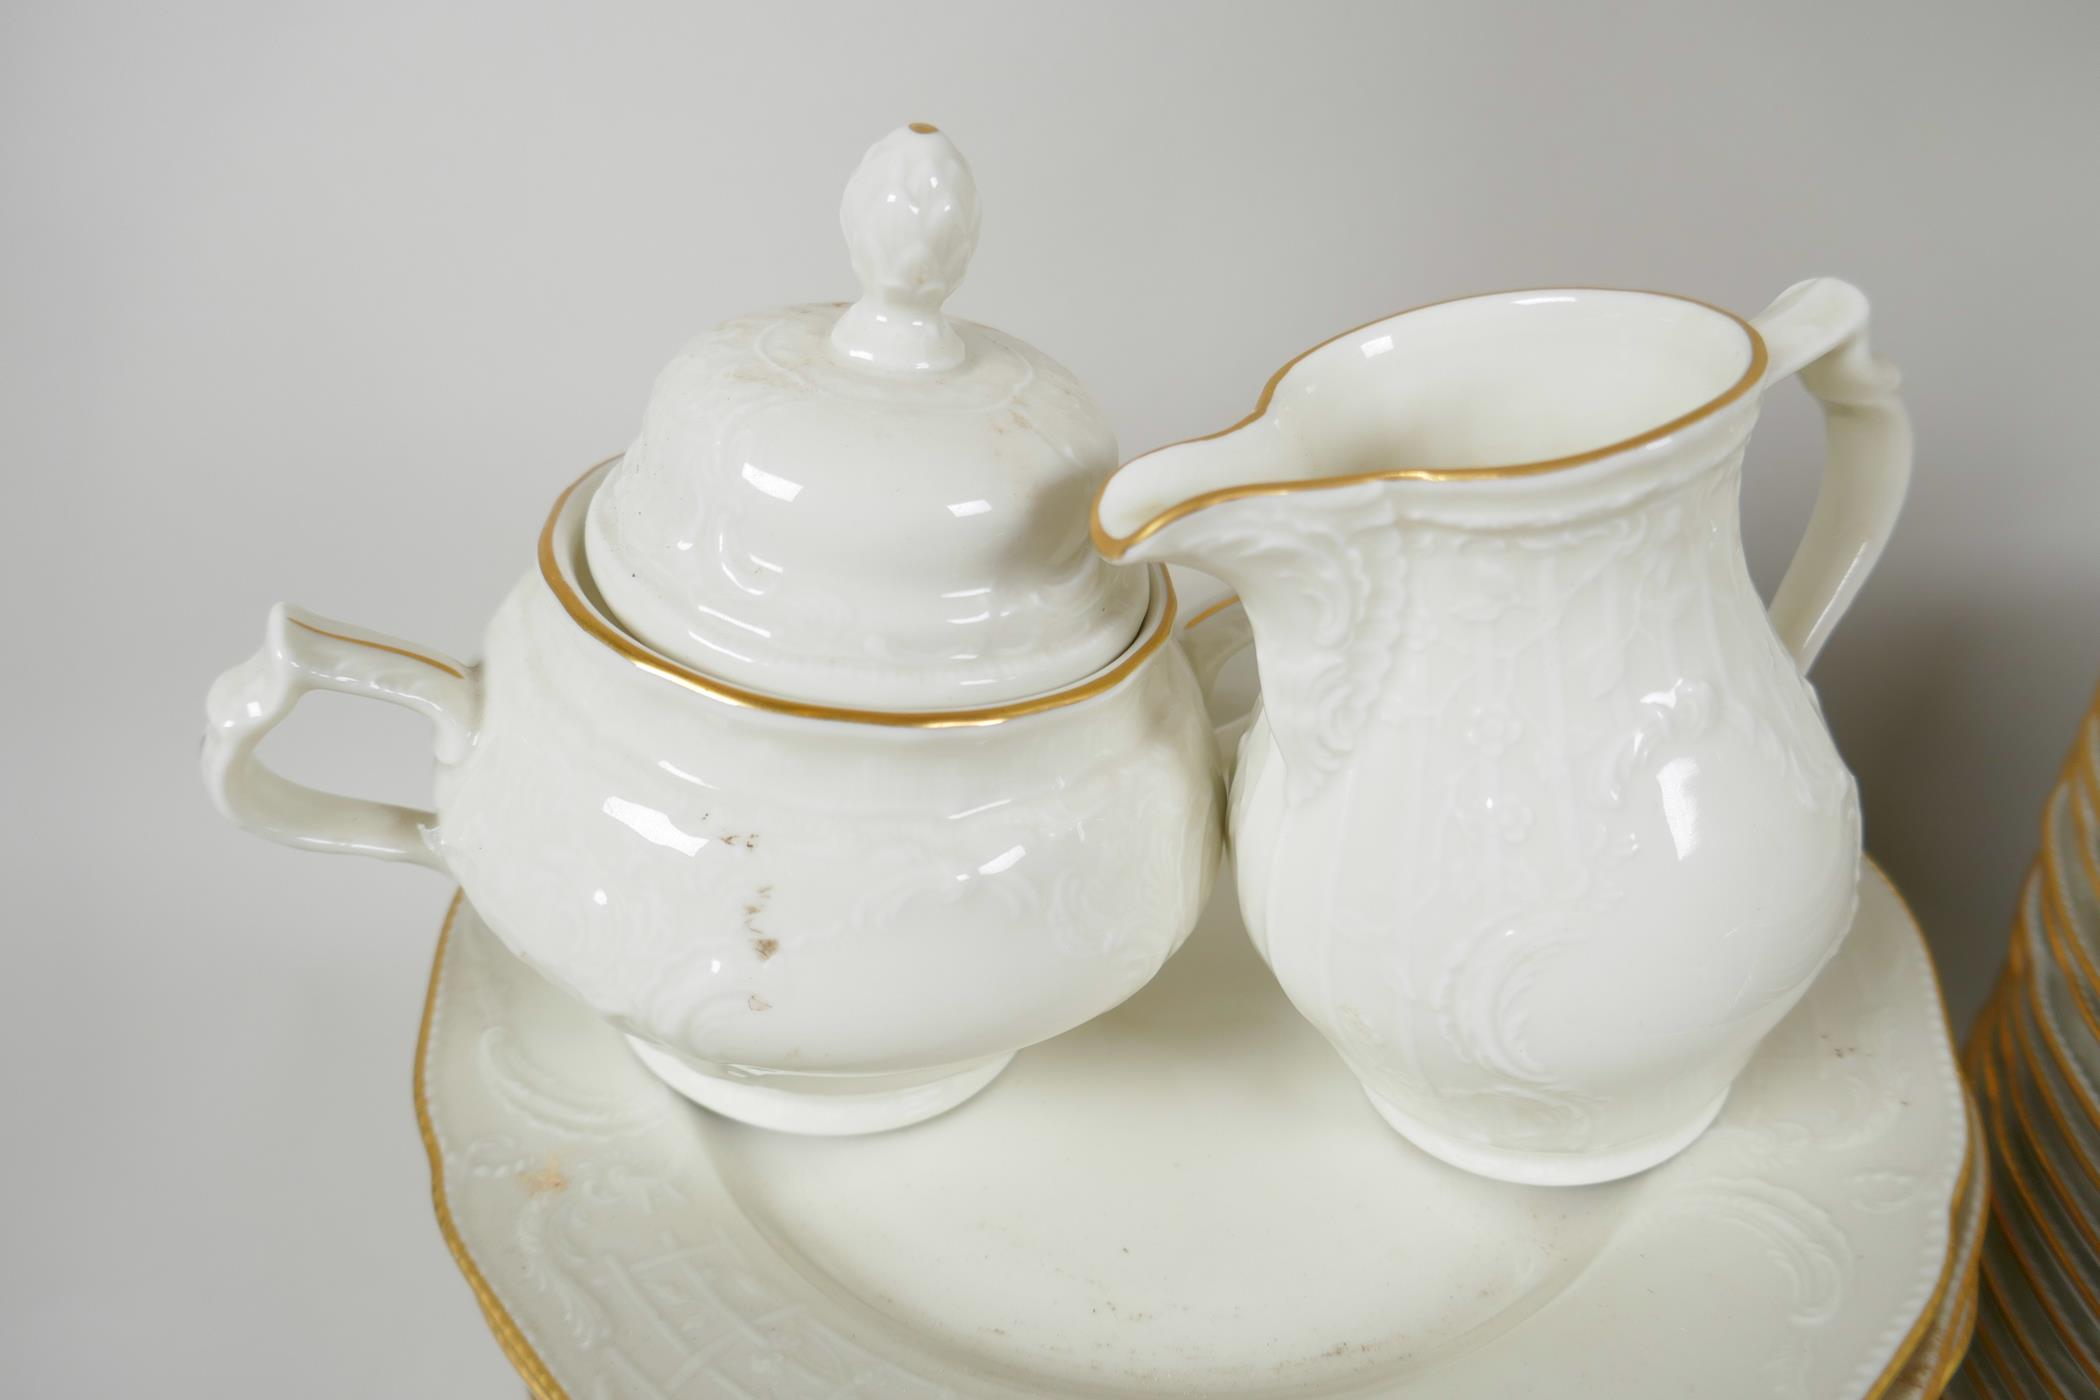 A Rosenthal 'Classic' part dinner and tea service with cream glaze and embossed decoration - Image 4 of 5